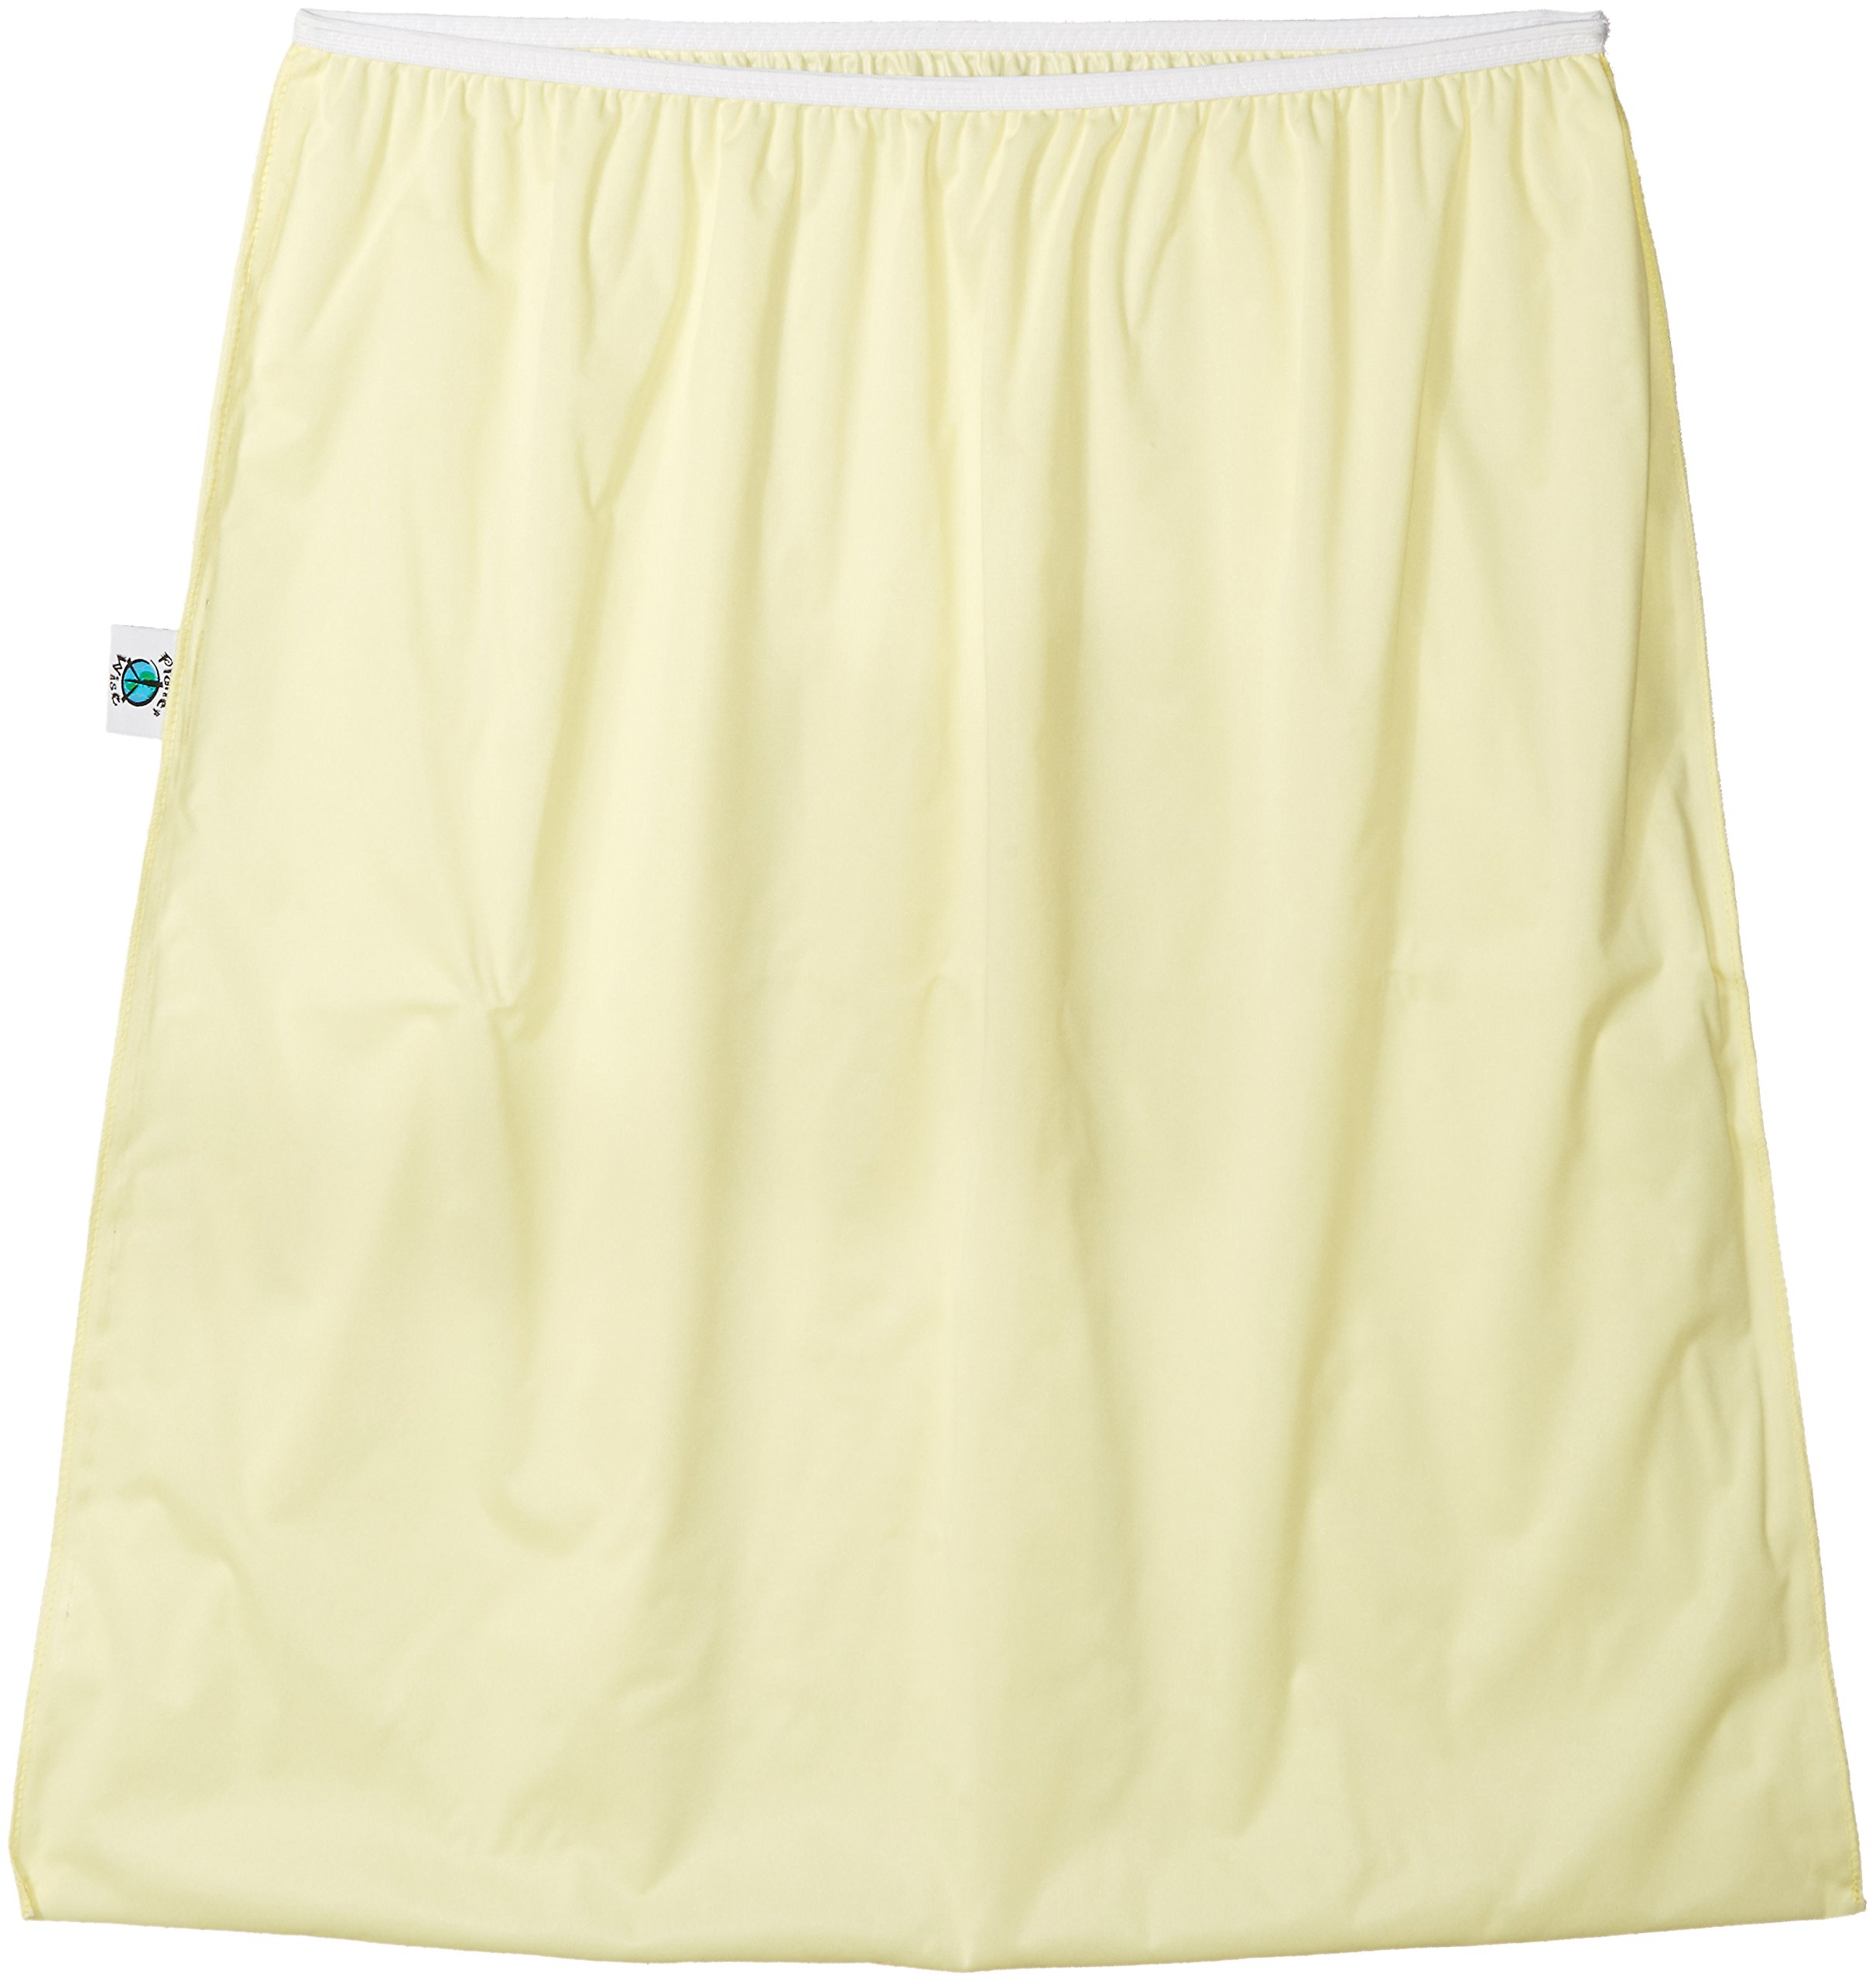 Planet Wise Reusable Diaper Pail Liner, Butter